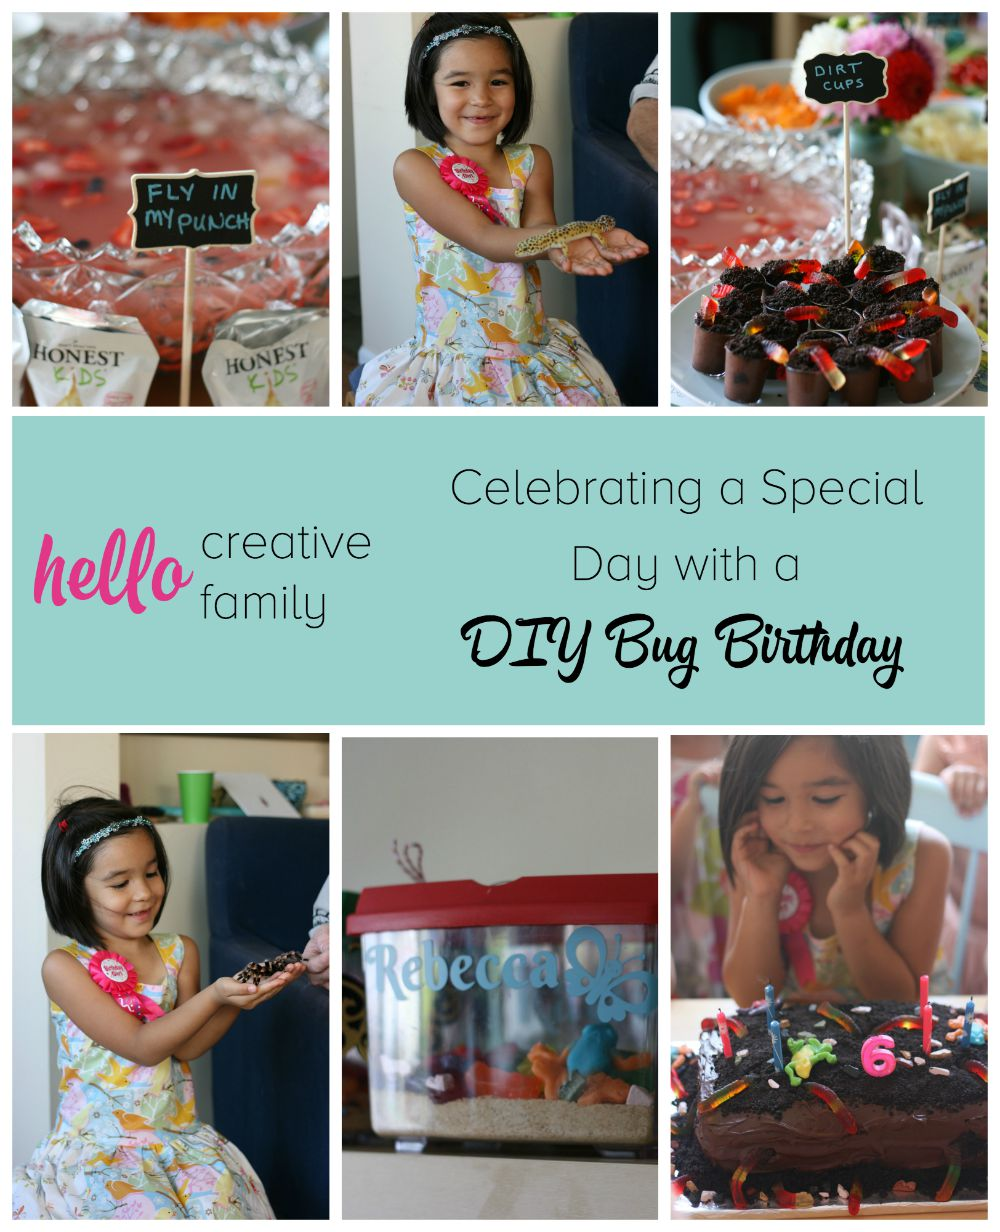 Celebrate your bug crazy kid's special day with these easy DIY Bug Birthday ideas